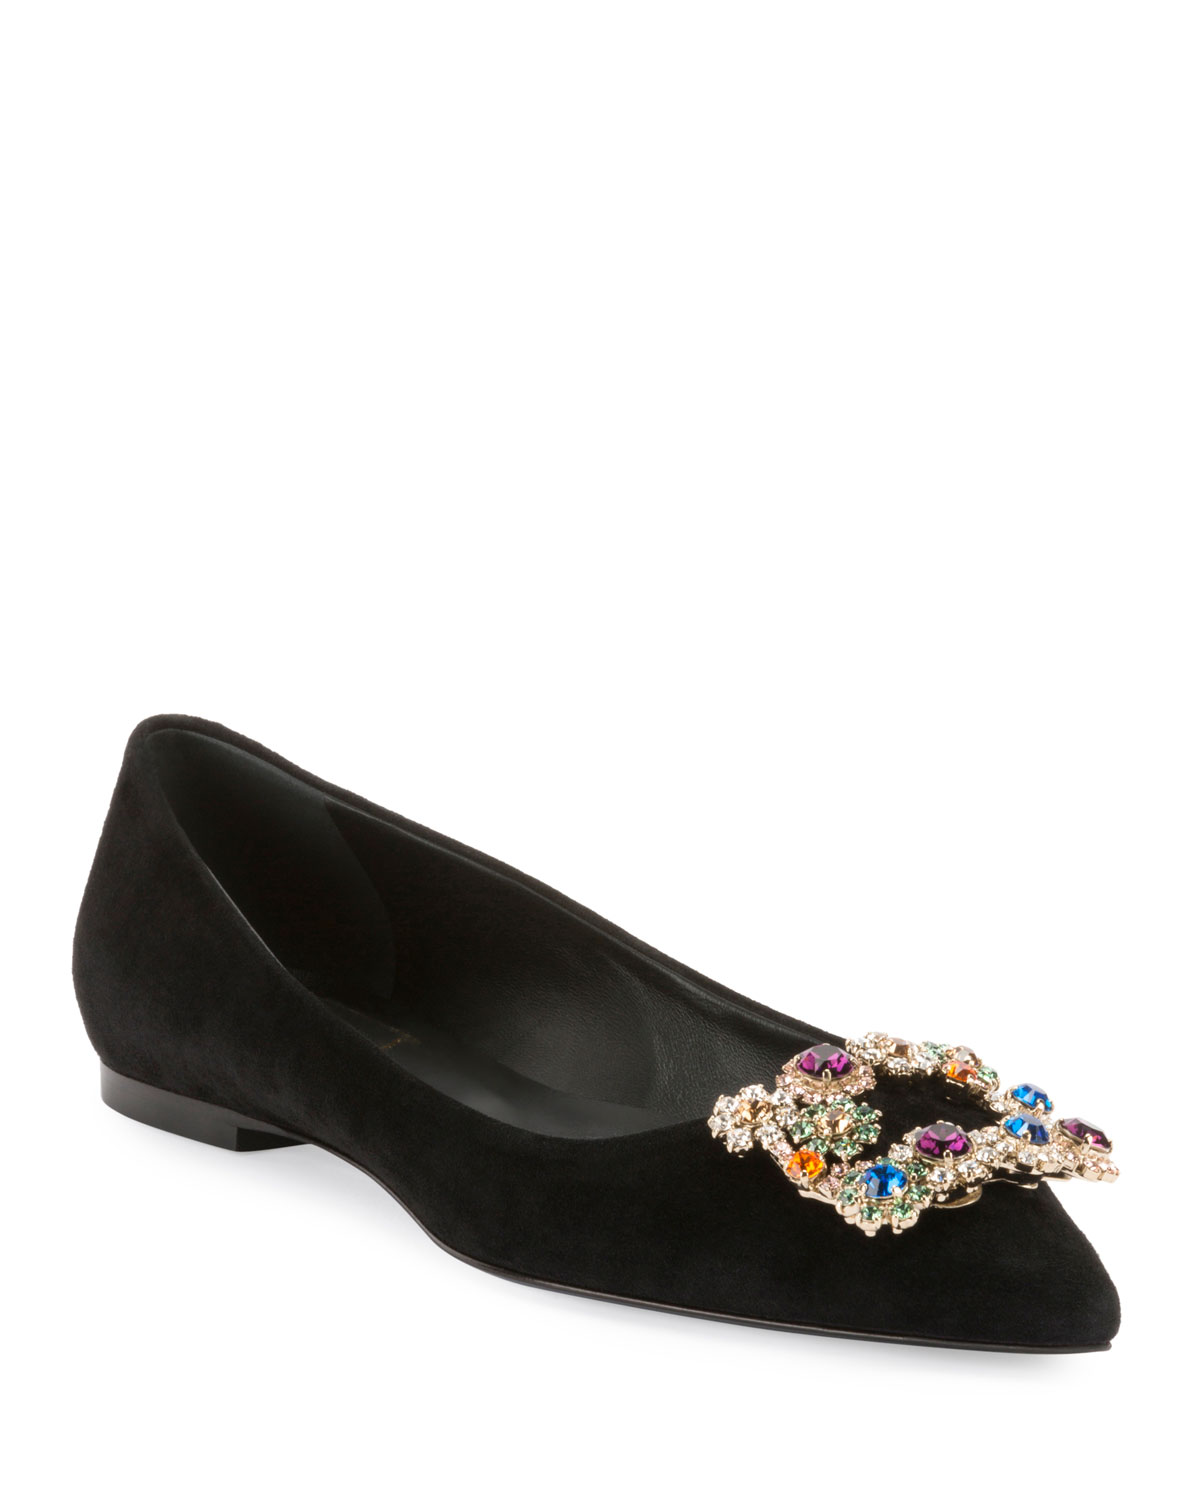 3998ebe2f9e1 Roger Vivier Suede Ballet Flats with Flower-Crystal Buckle